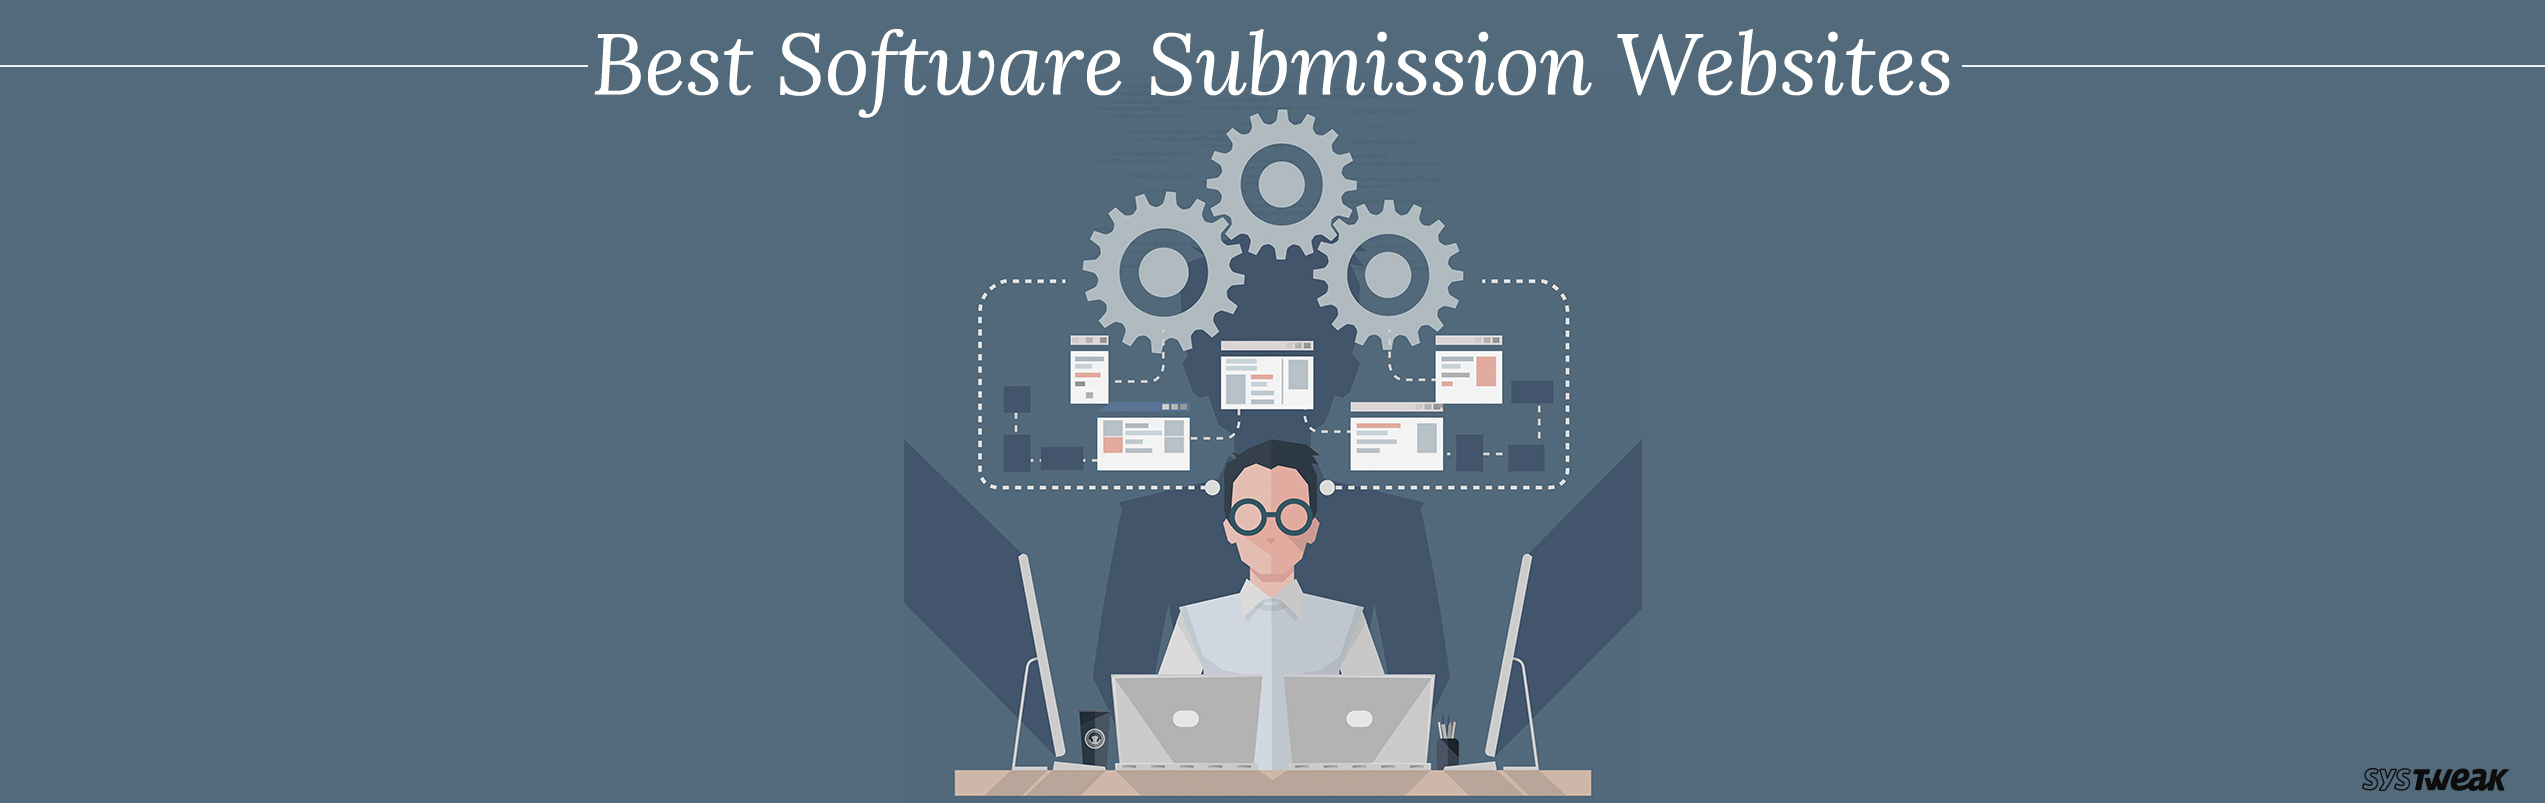 Free Software Submission Websites 2018